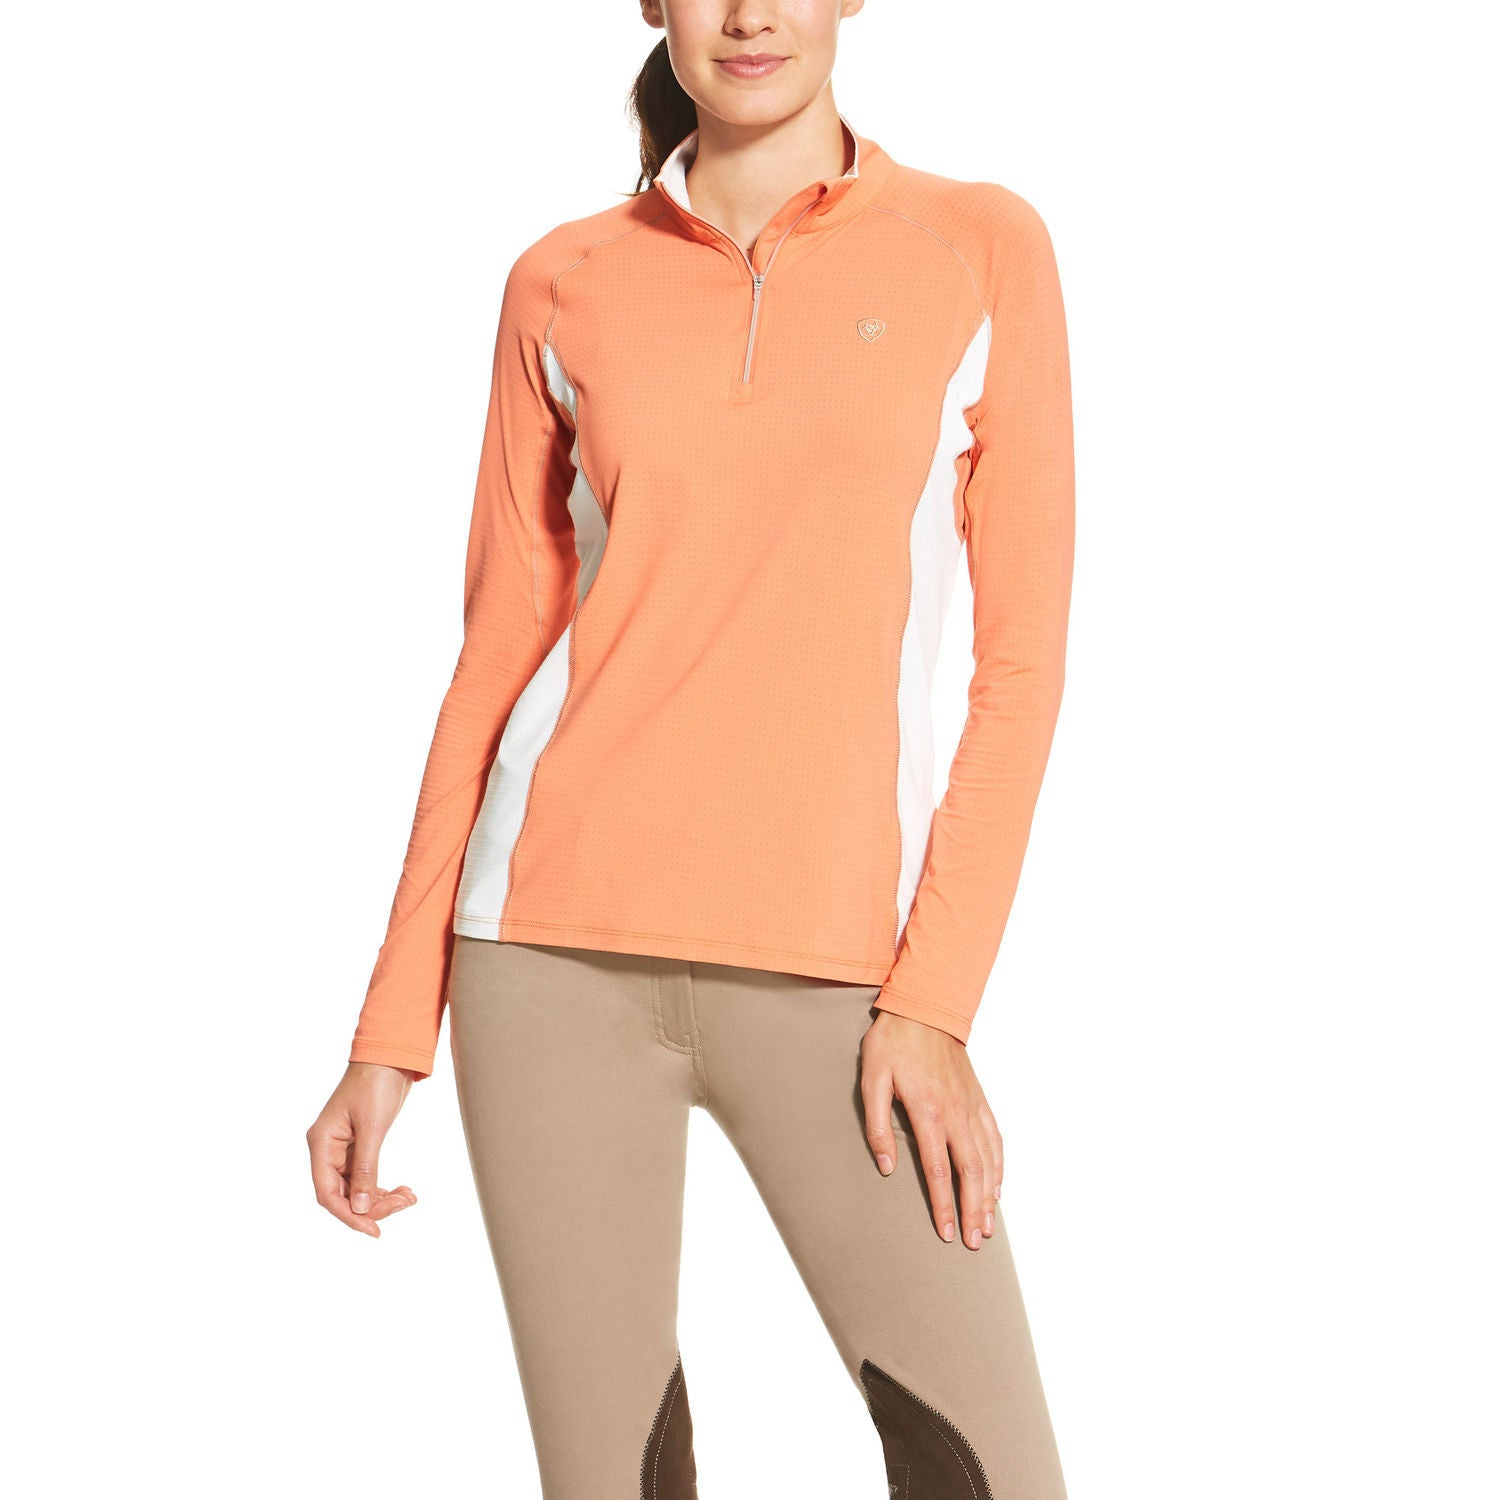 Ariat Tri Factor 1/4 Zip Shirt - SALE - North Shore Saddlery